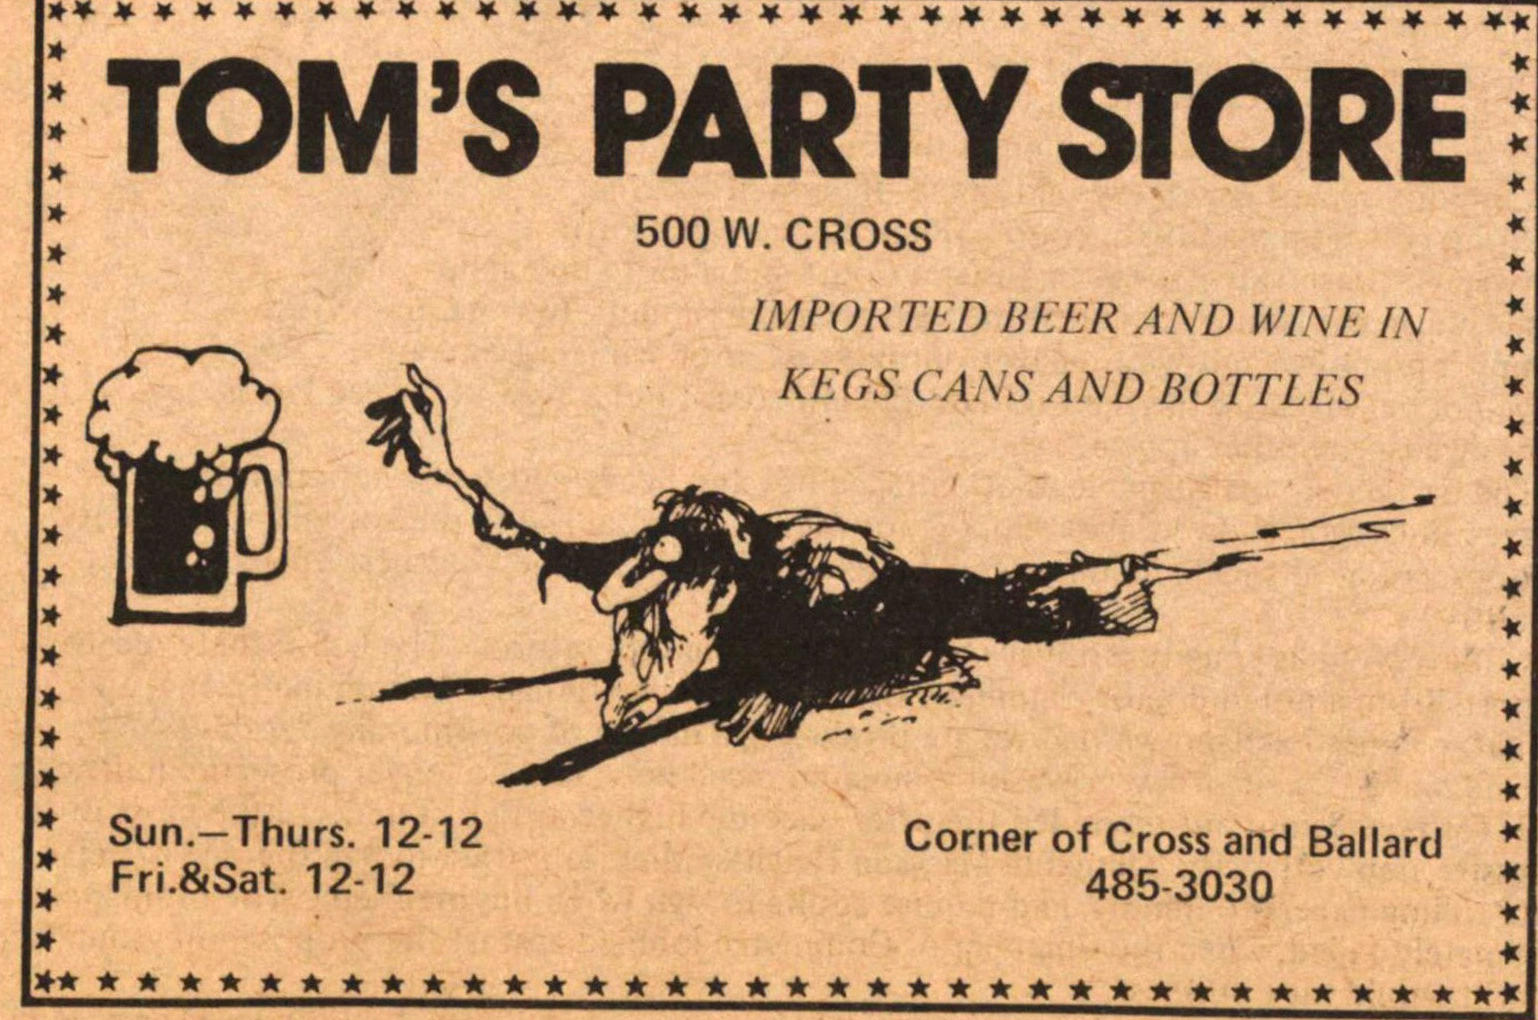 Tom's Party Store image